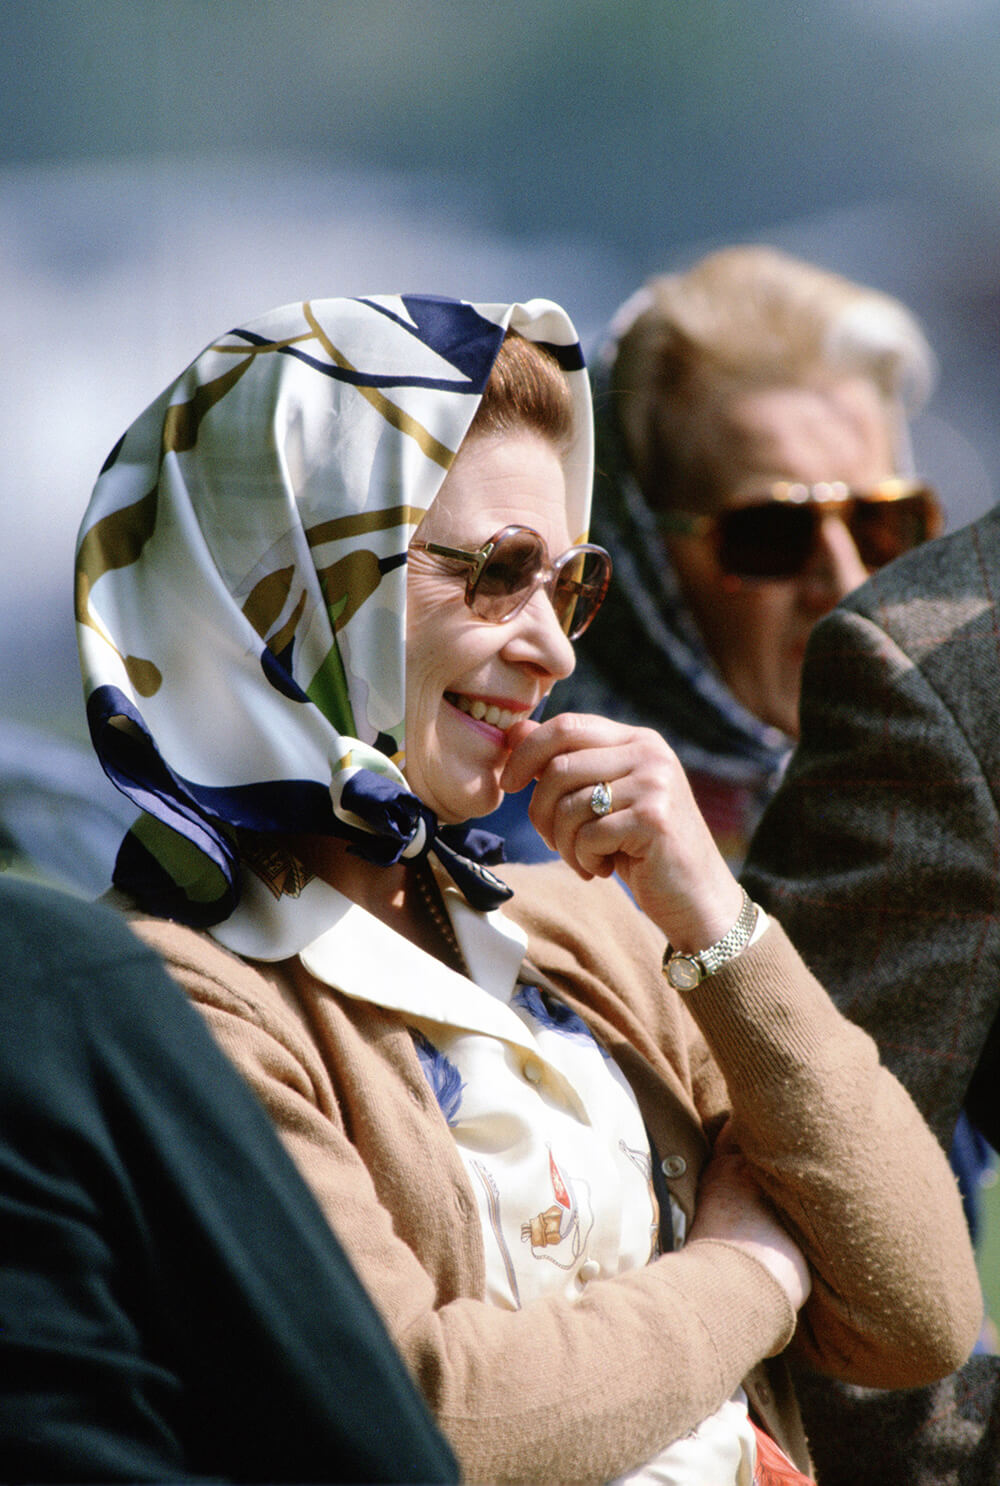 Queen Elizabeth II at the Royal Windsor Horse Show watching fine art photography